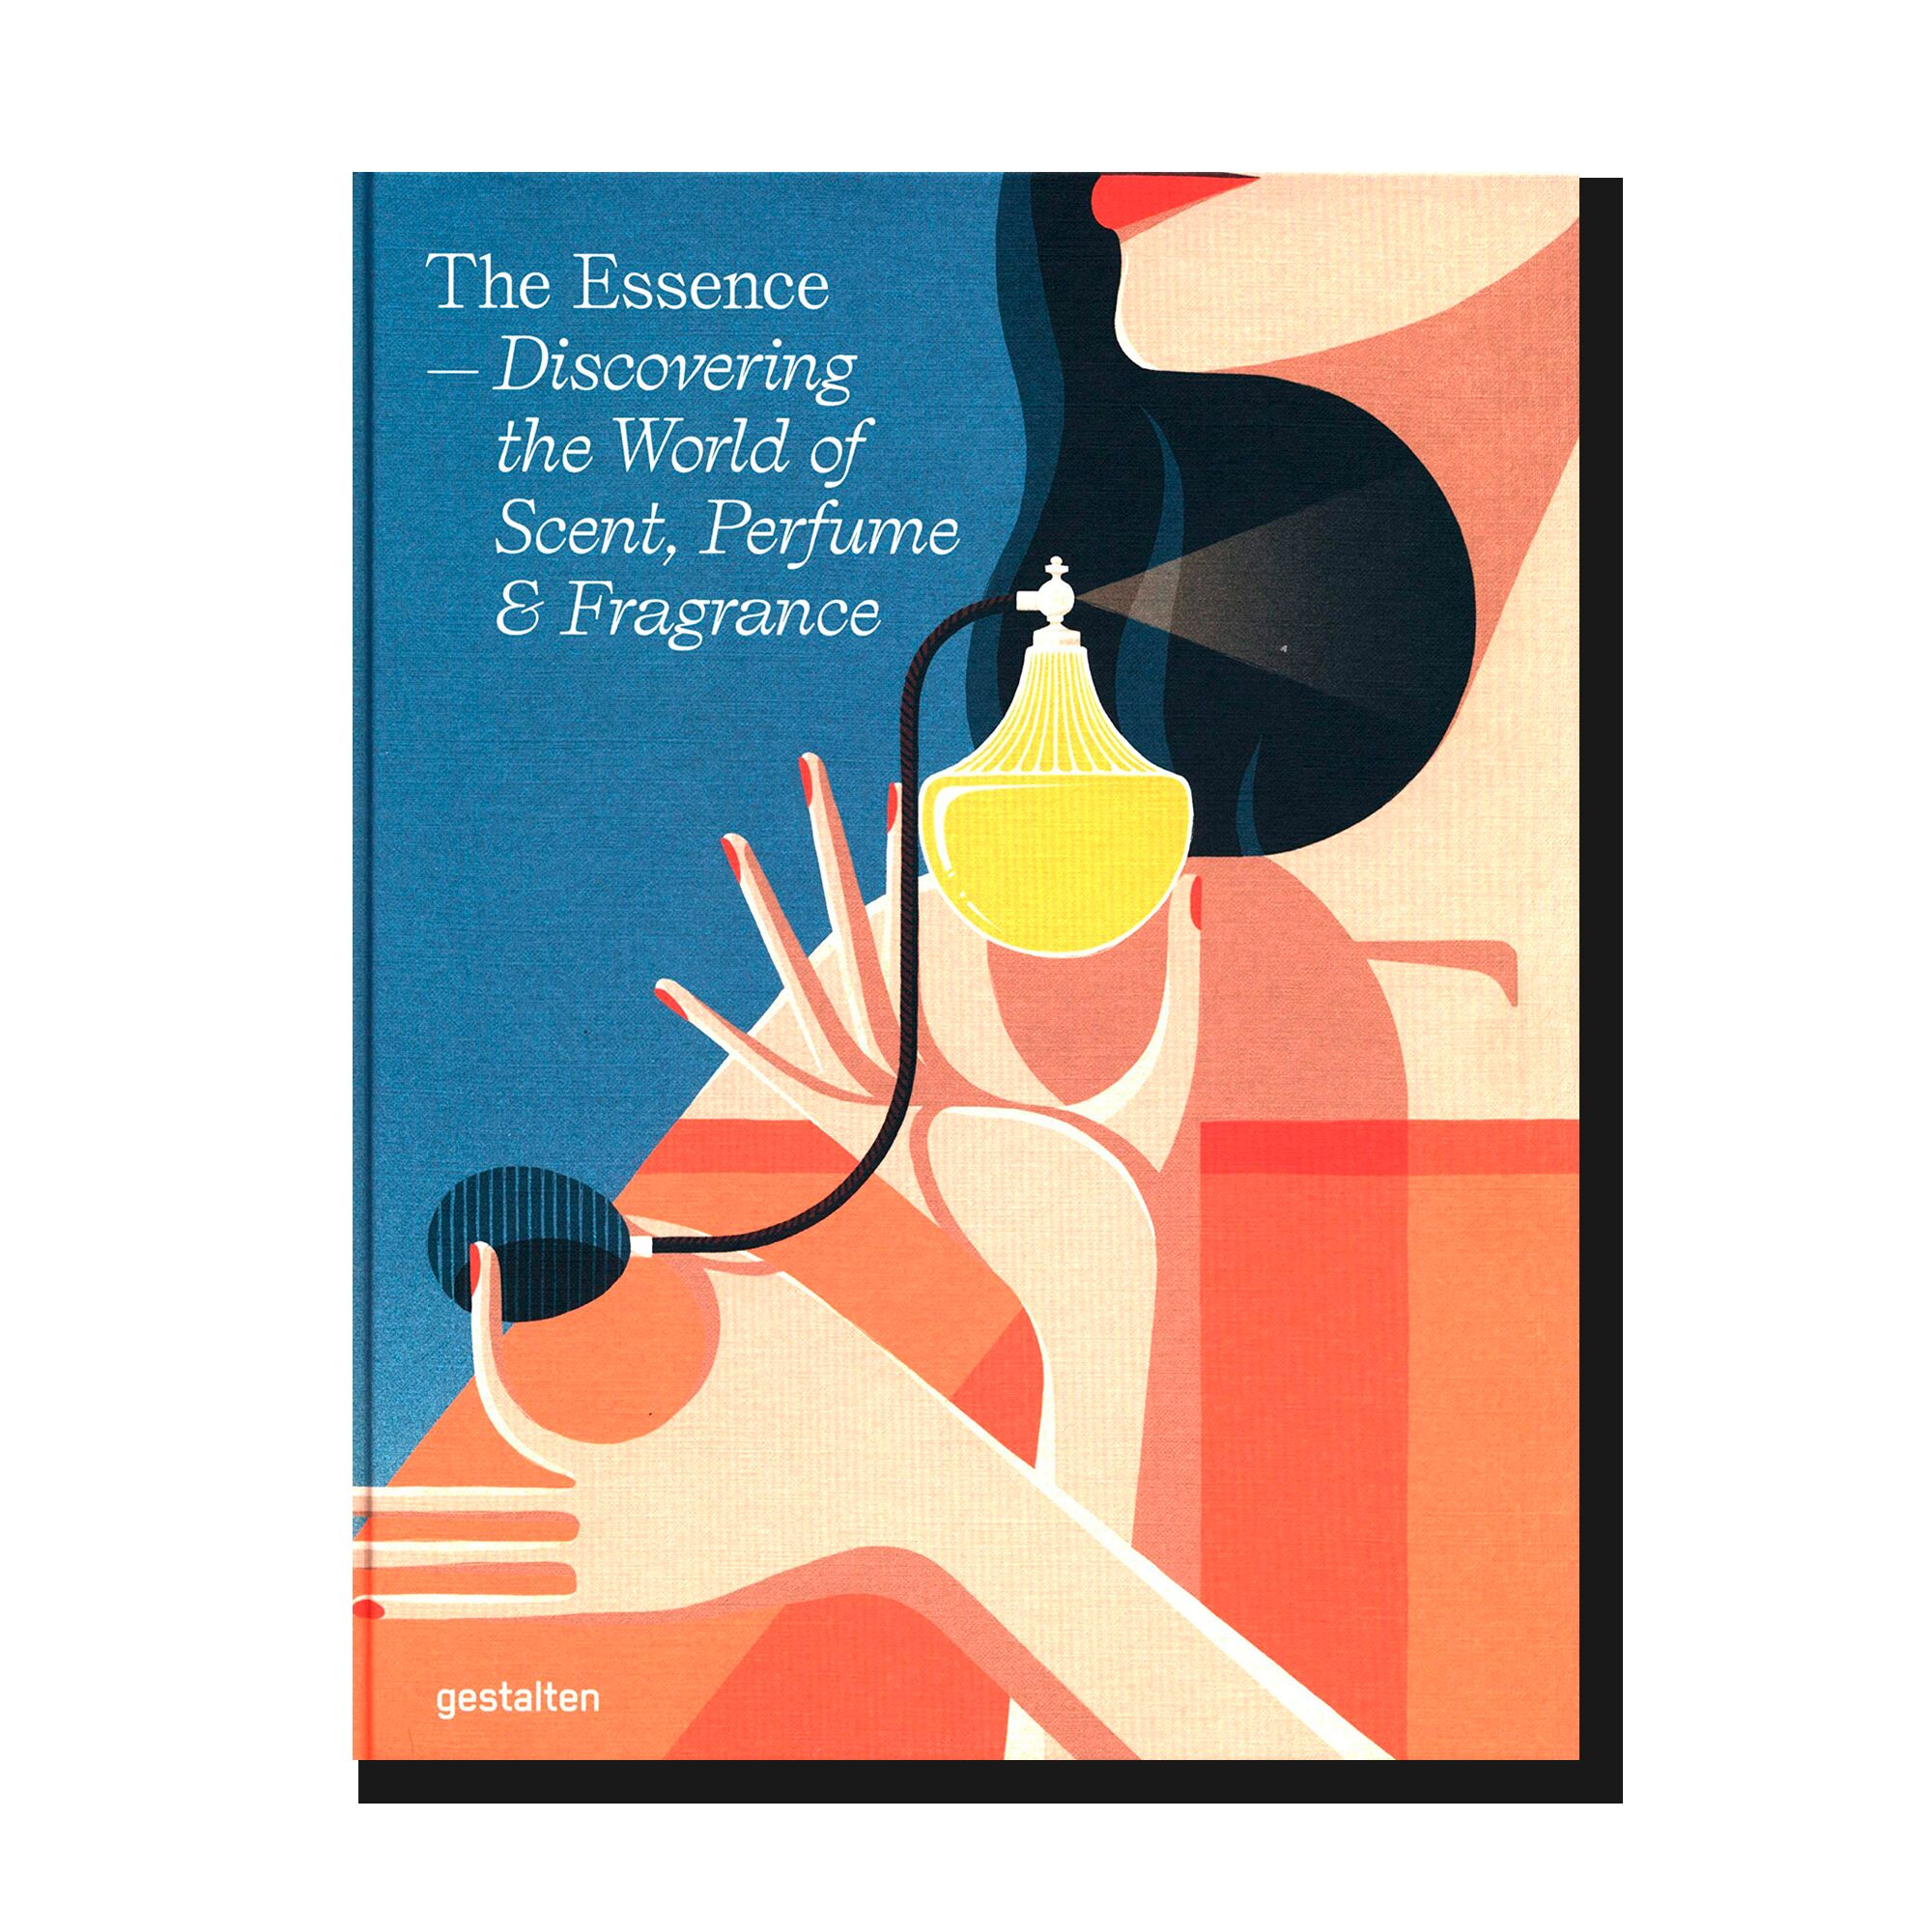 The Essence. Discovering the World of Scent, Perfume & Fragrance